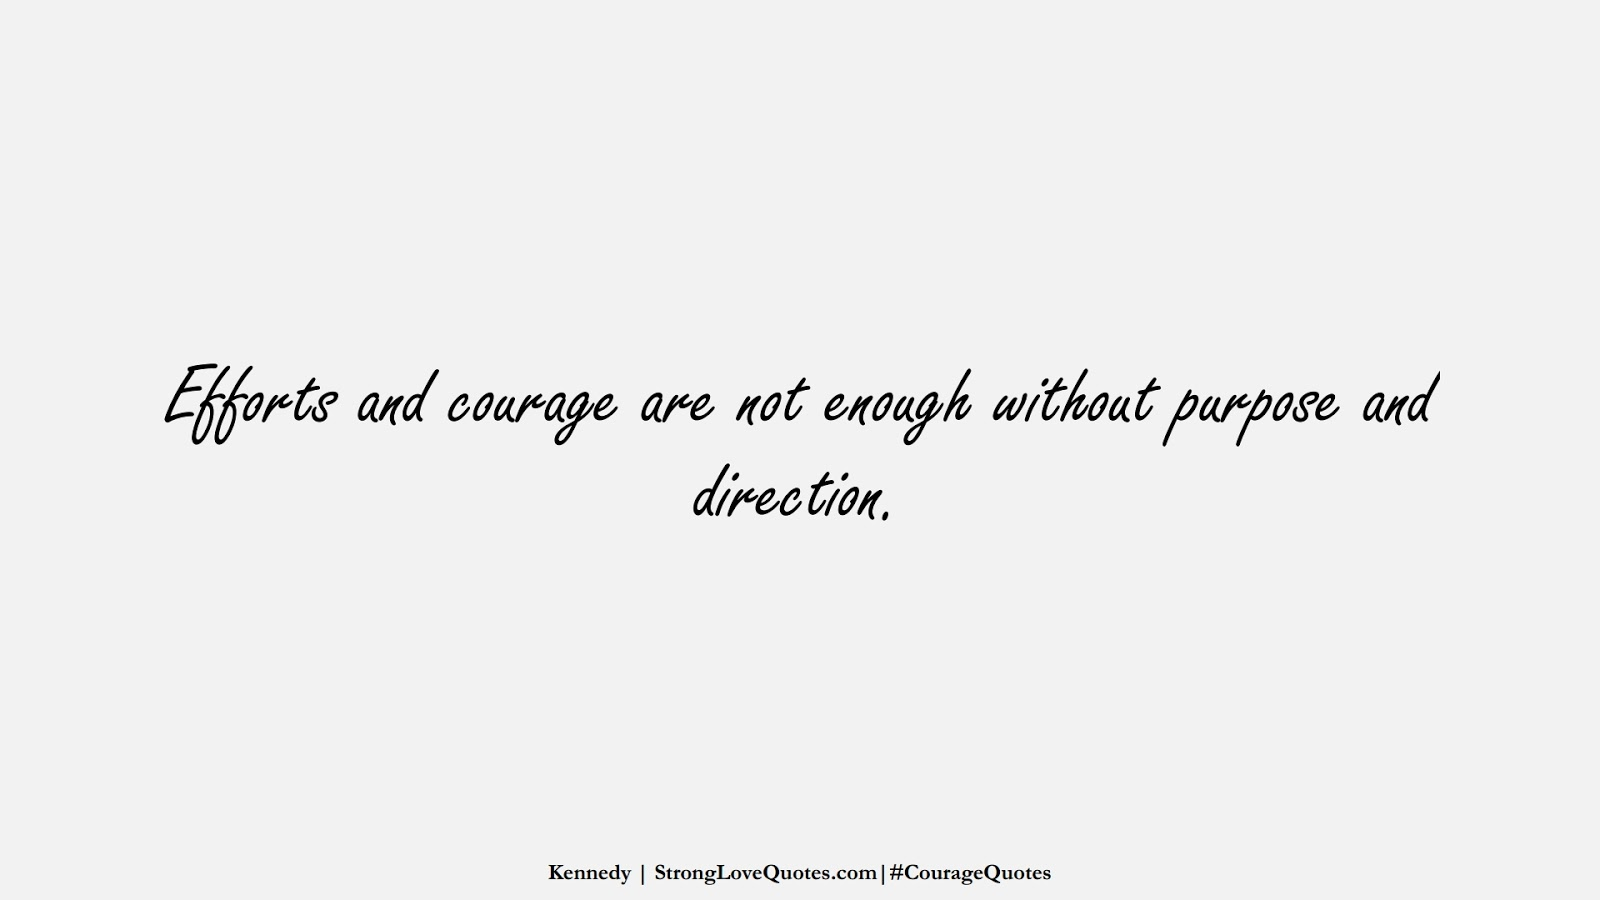 Efforts and courage are not enough without purpose and direction. (Kennedy);  #CourageQuotes